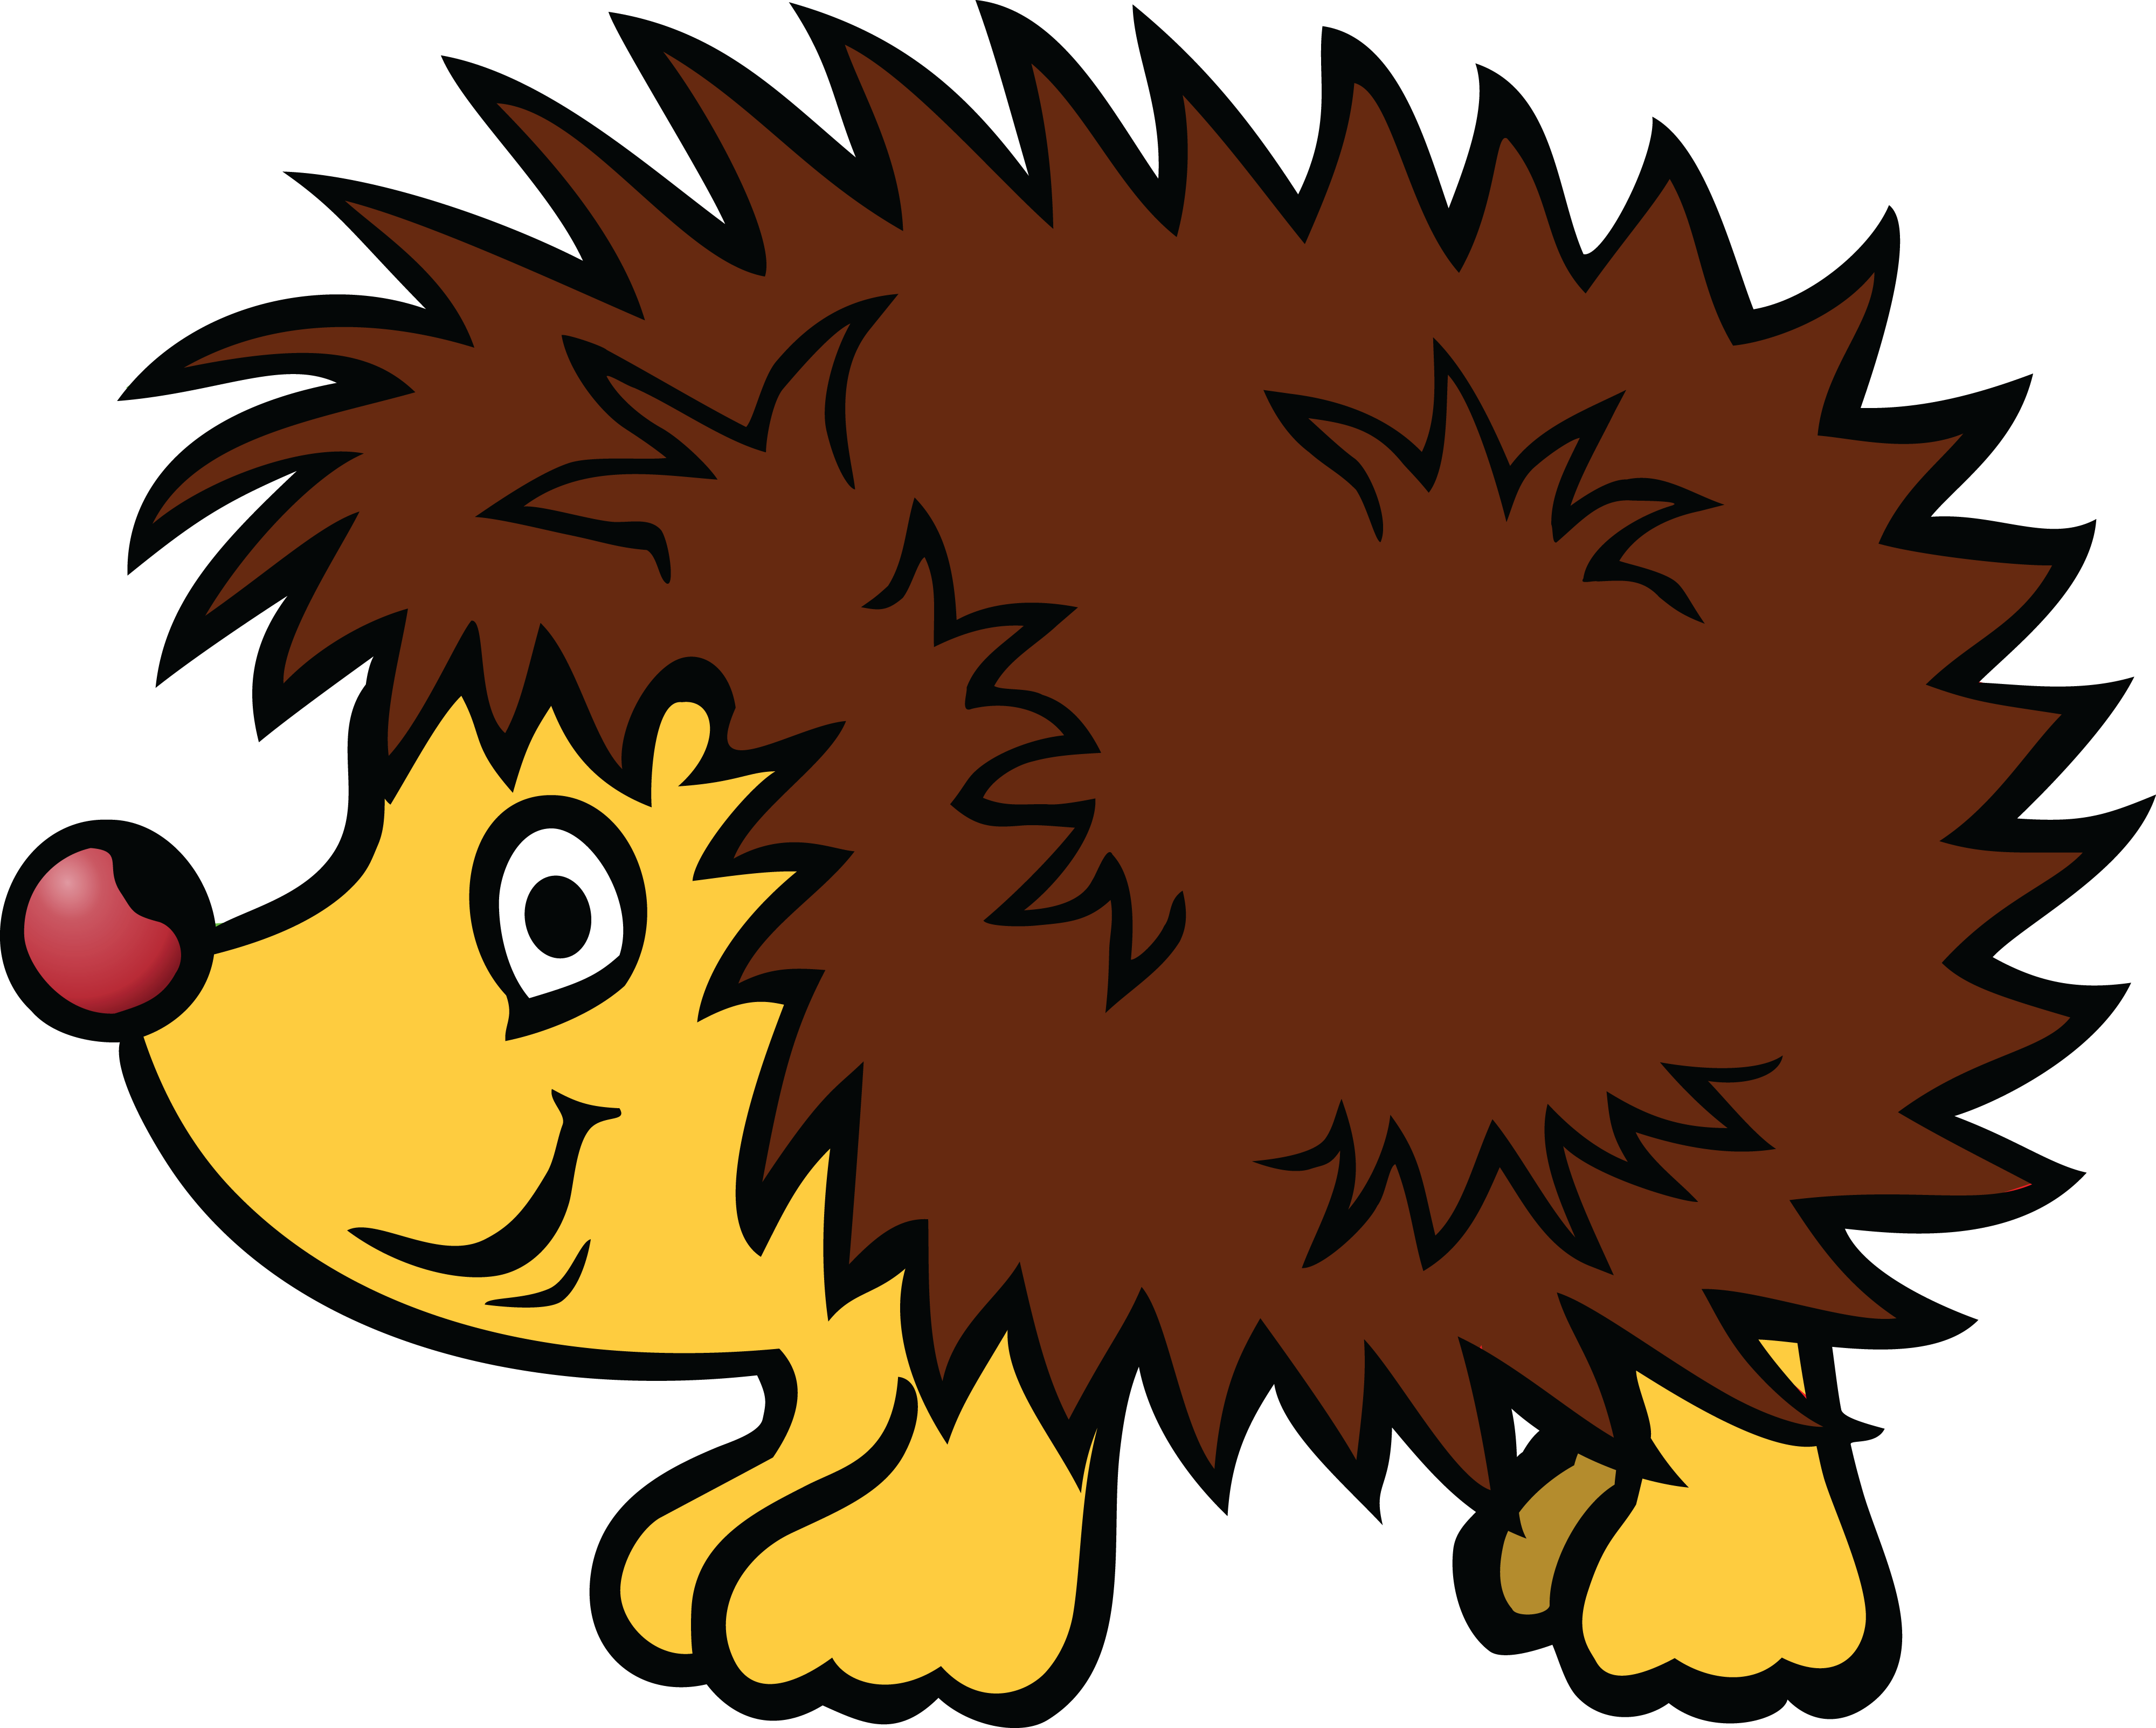 sonic the hedgehog clipart free at getdrawings com free for rh getdrawings com hedgehog clipart images hedgehog clipart pinterest